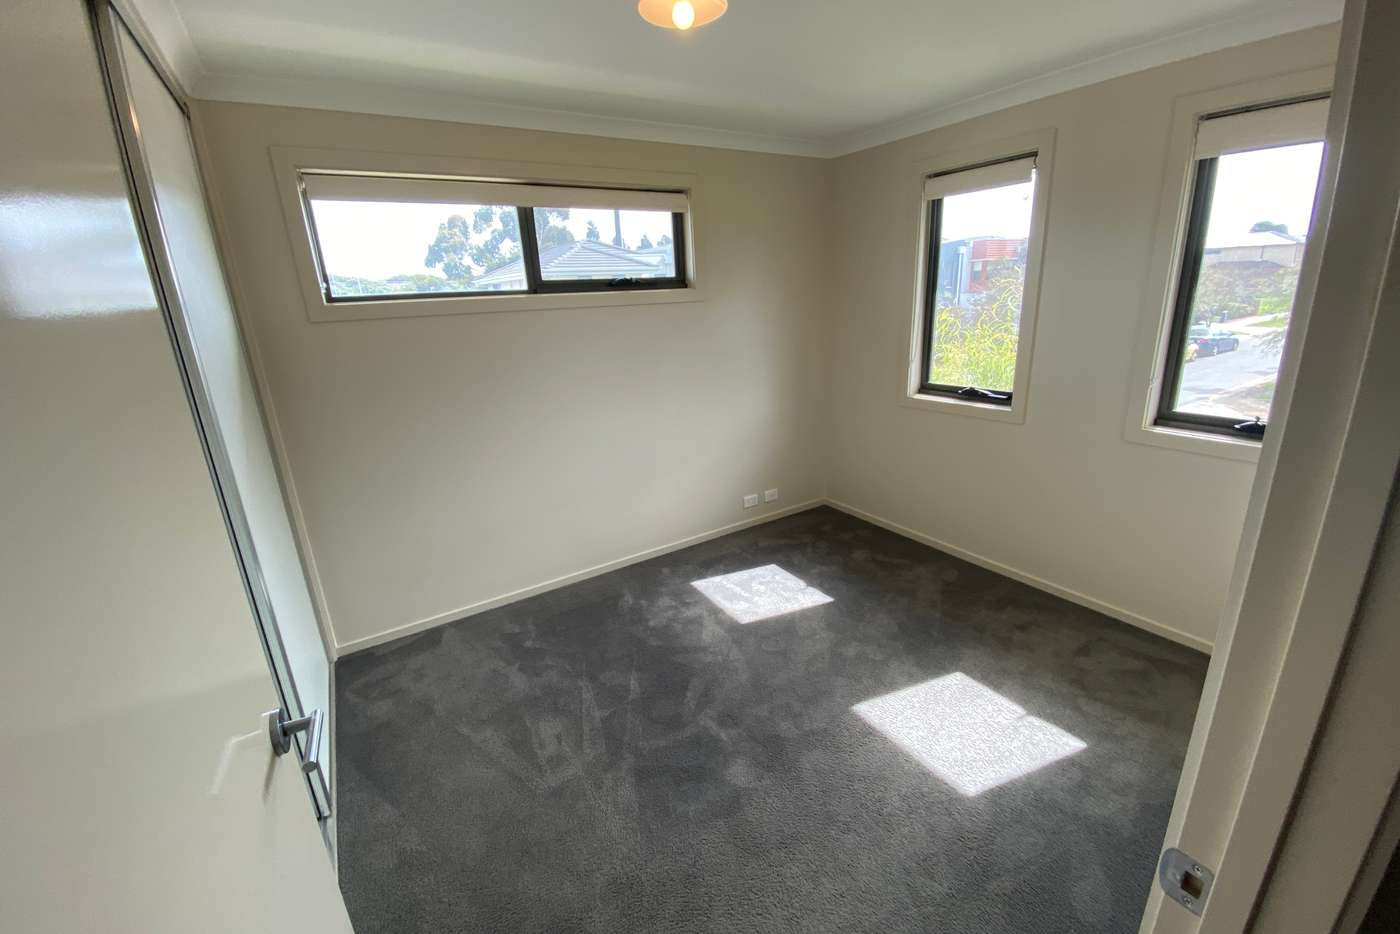 Seventh view of Homely townhouse listing, 1 Durant Avenue, Sunshine West VIC 3020